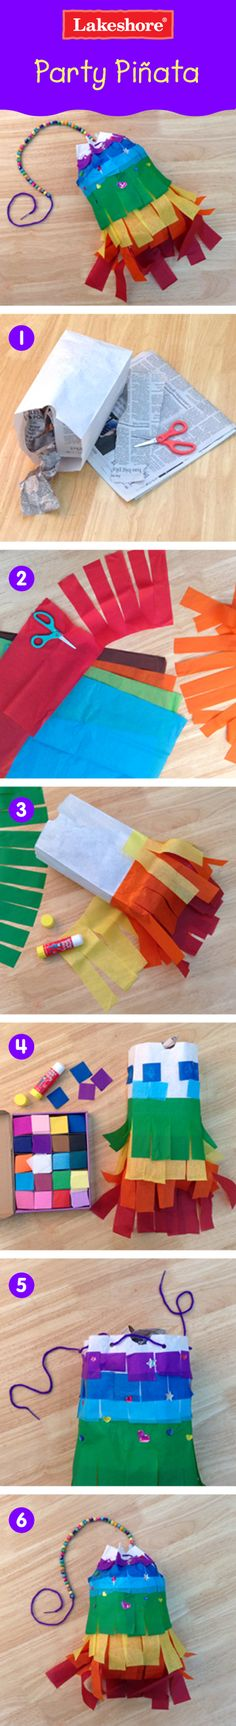 #GetCrafty Sweepstakes, enter here: lakeshorelearning.com/getcrafty